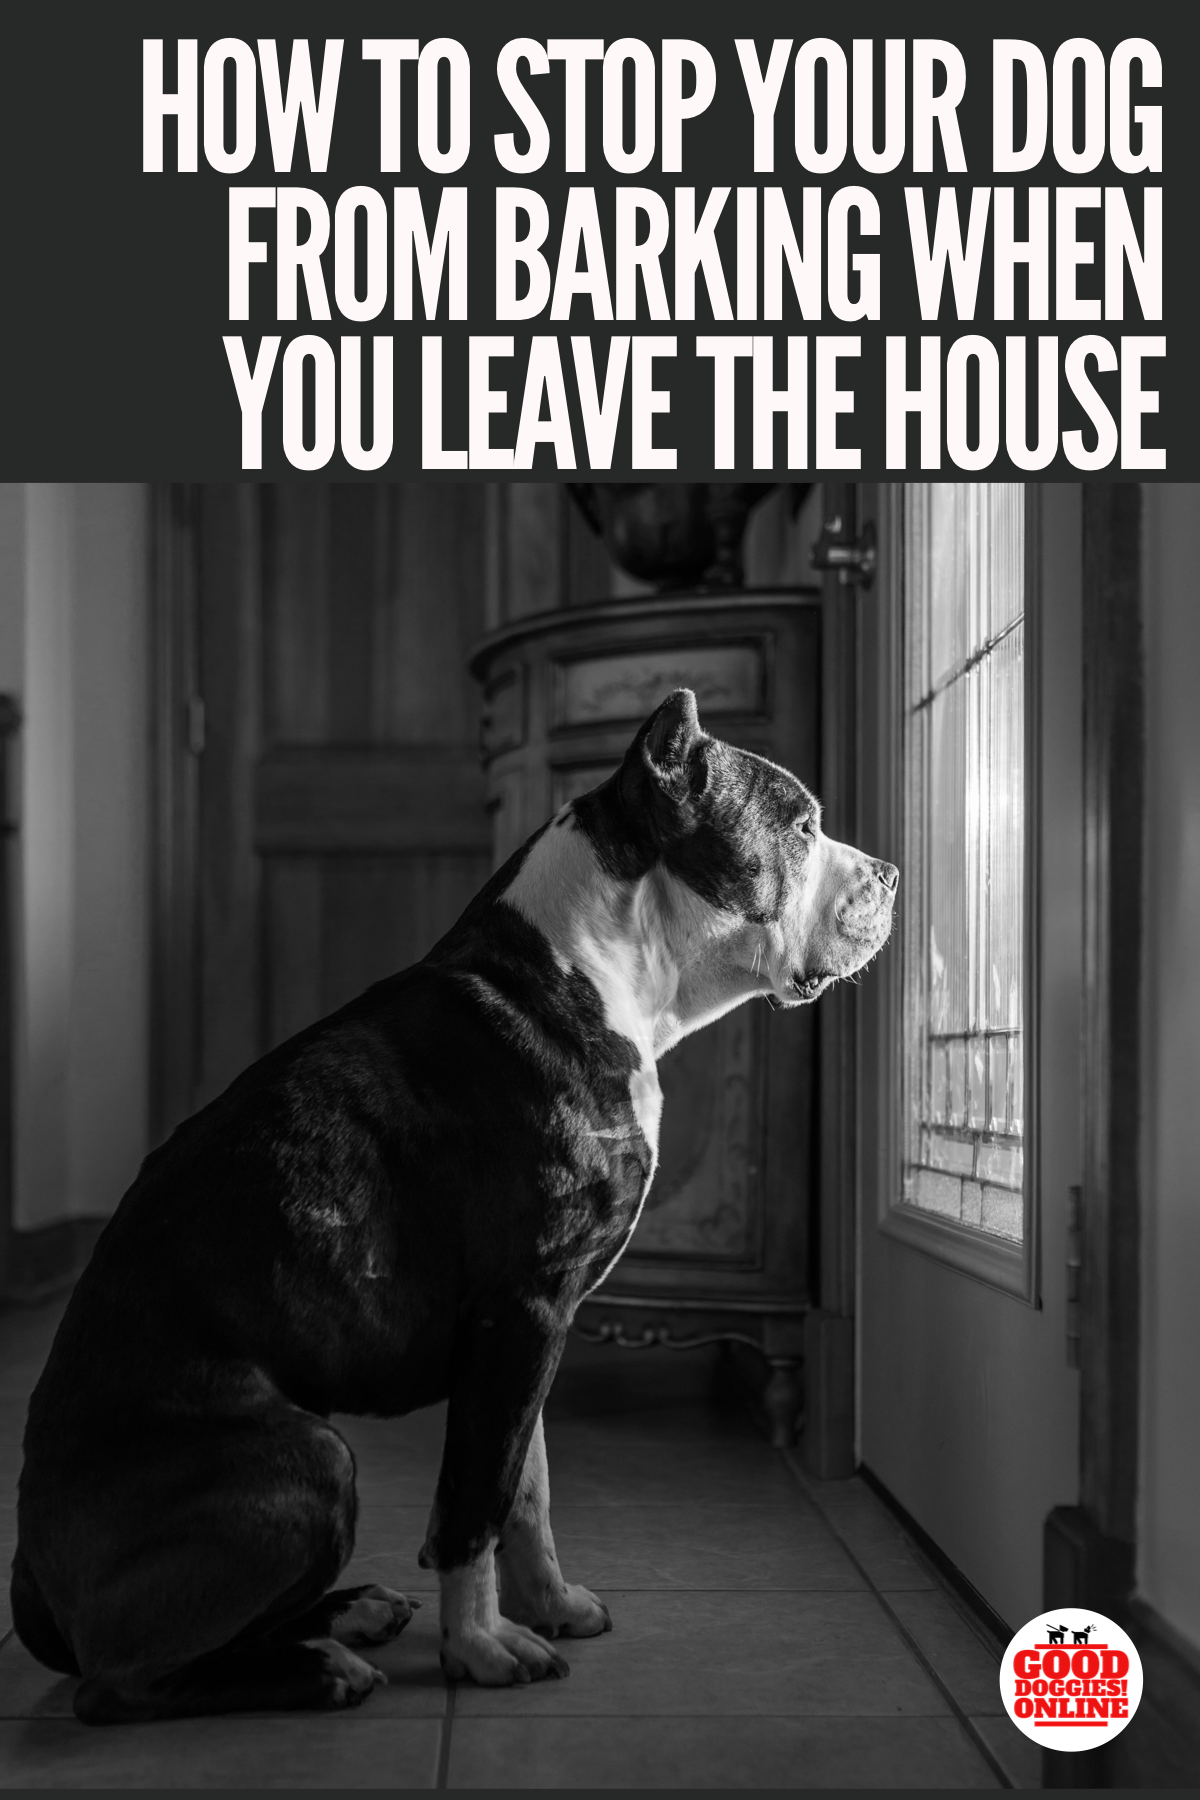 How To Stop Your Dog From Barking When You Leave The House Check Out These Dog Training Tips To Help Stop Ba Good Doggies Online Dog Training Stop Dog Barking